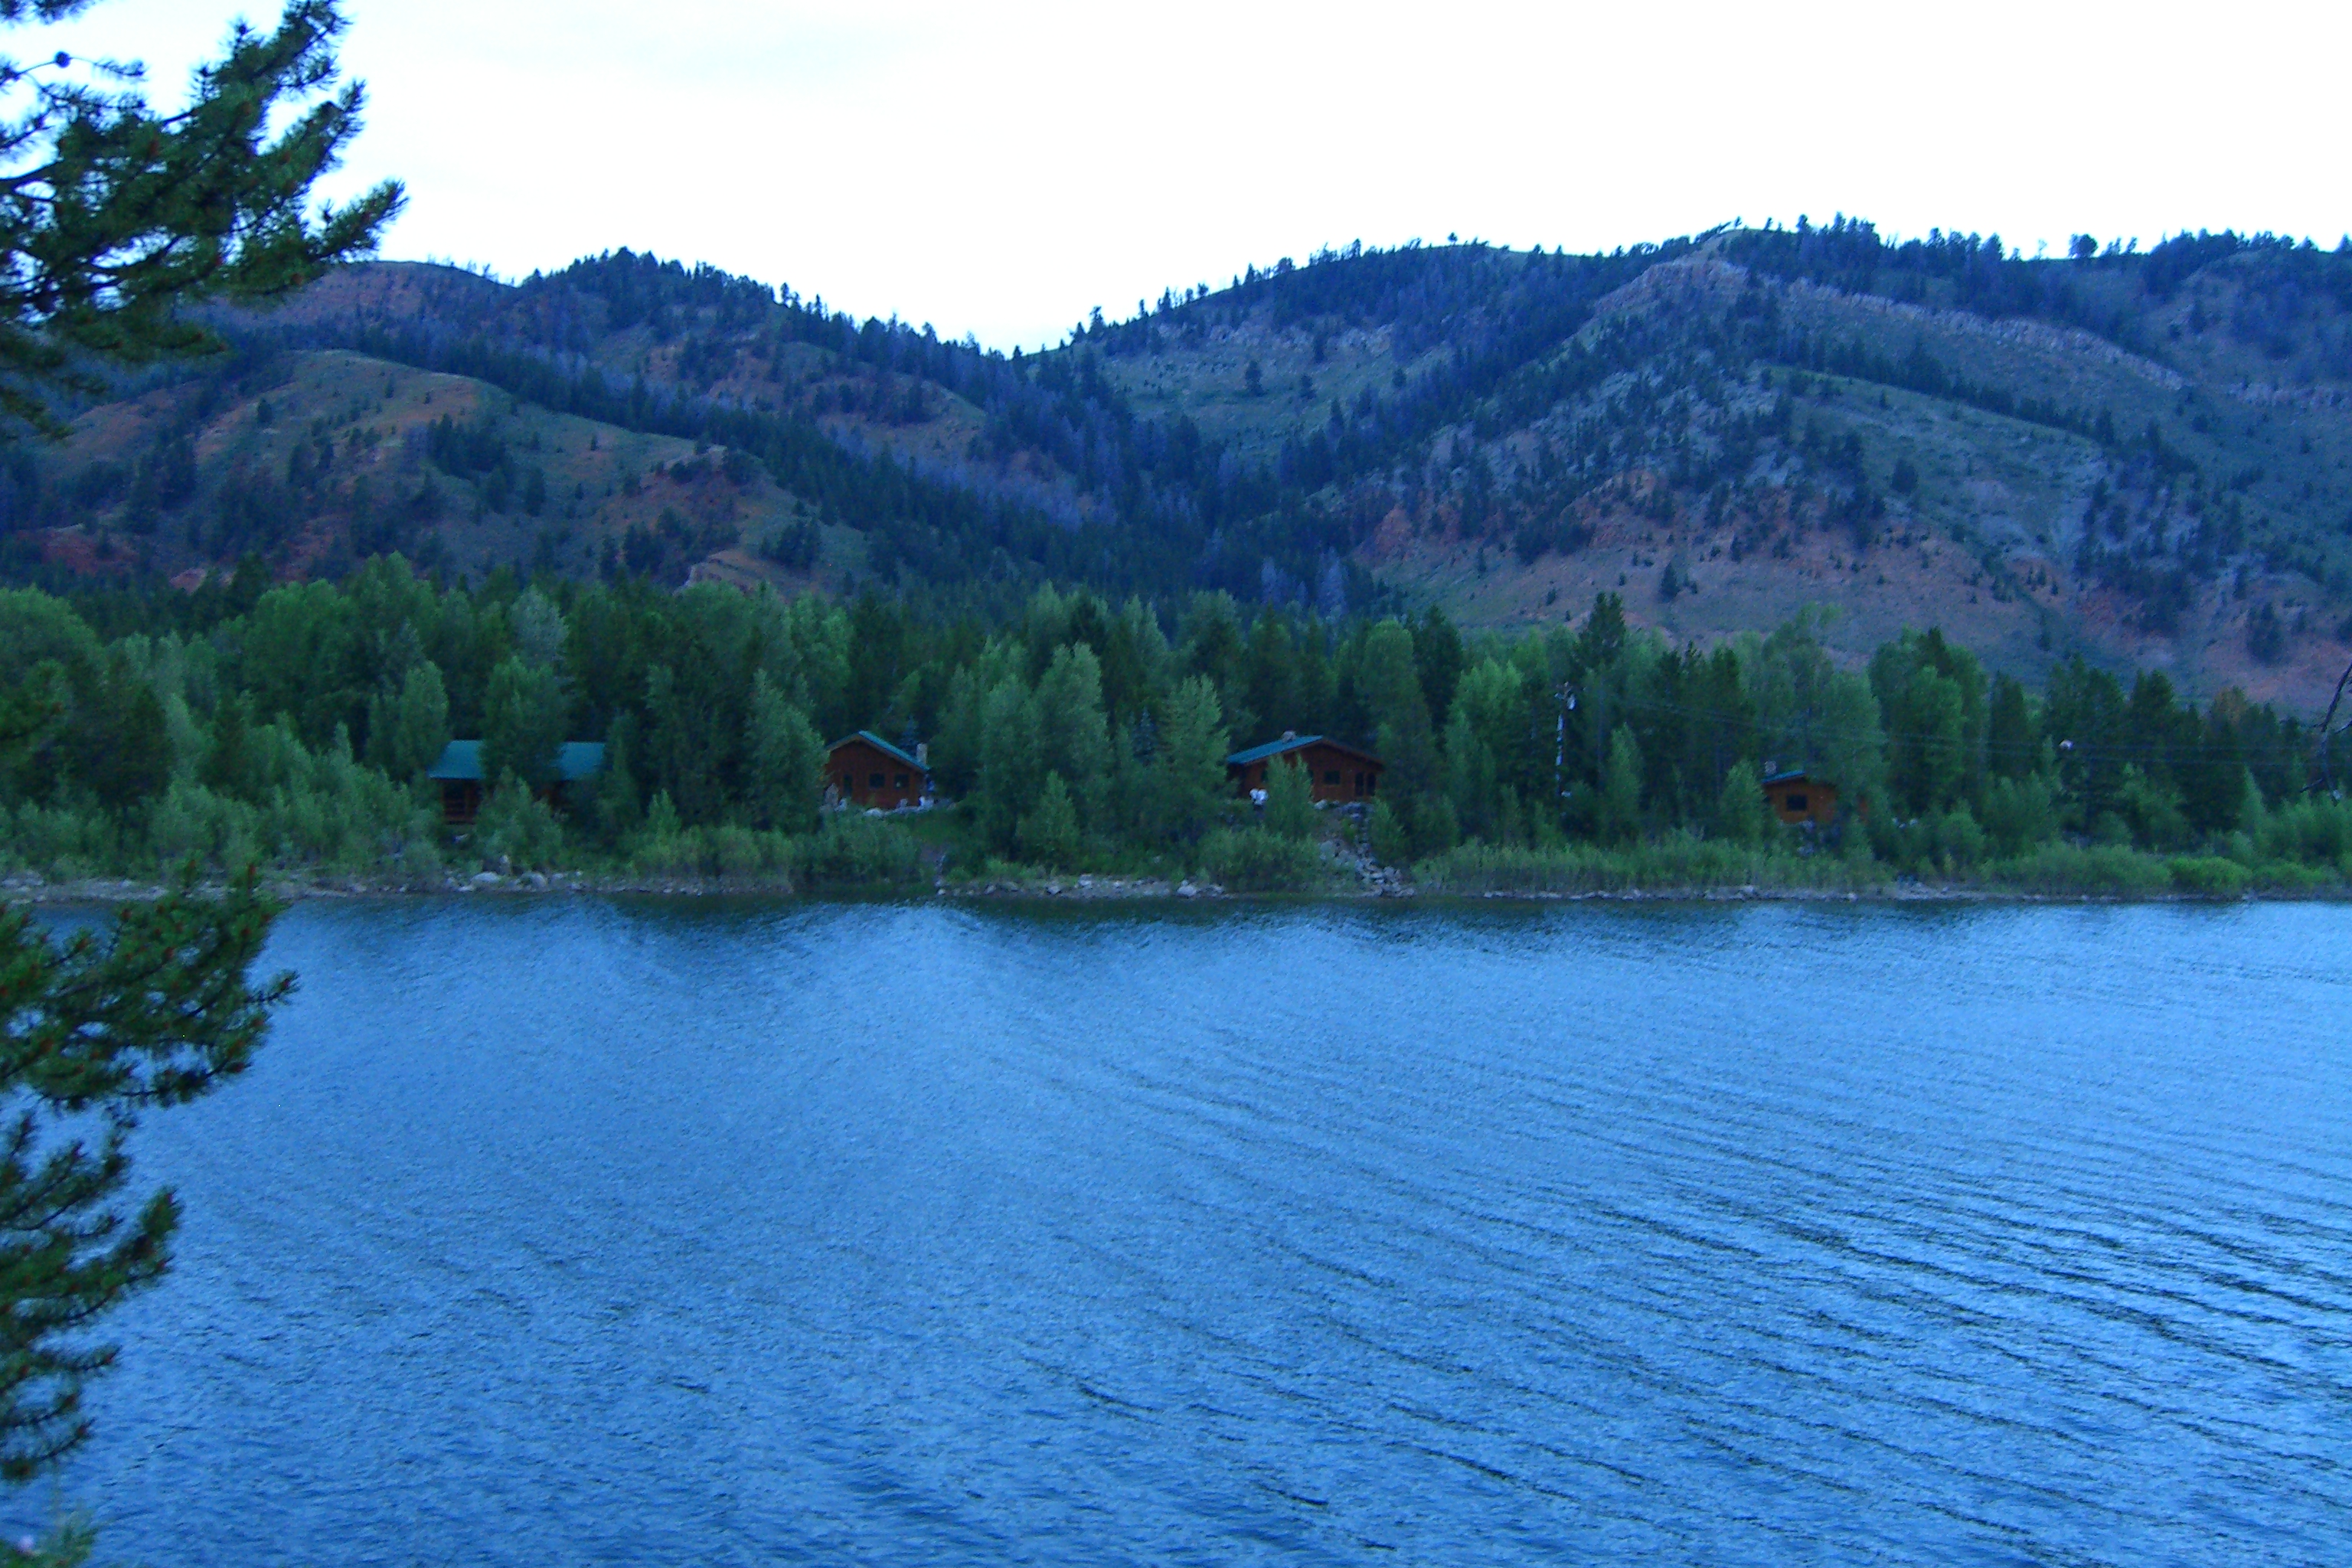 Budges Slide Lake Cabins 301 Moved Permanently Welcome To Our Jackson Hole Cabins On Slide